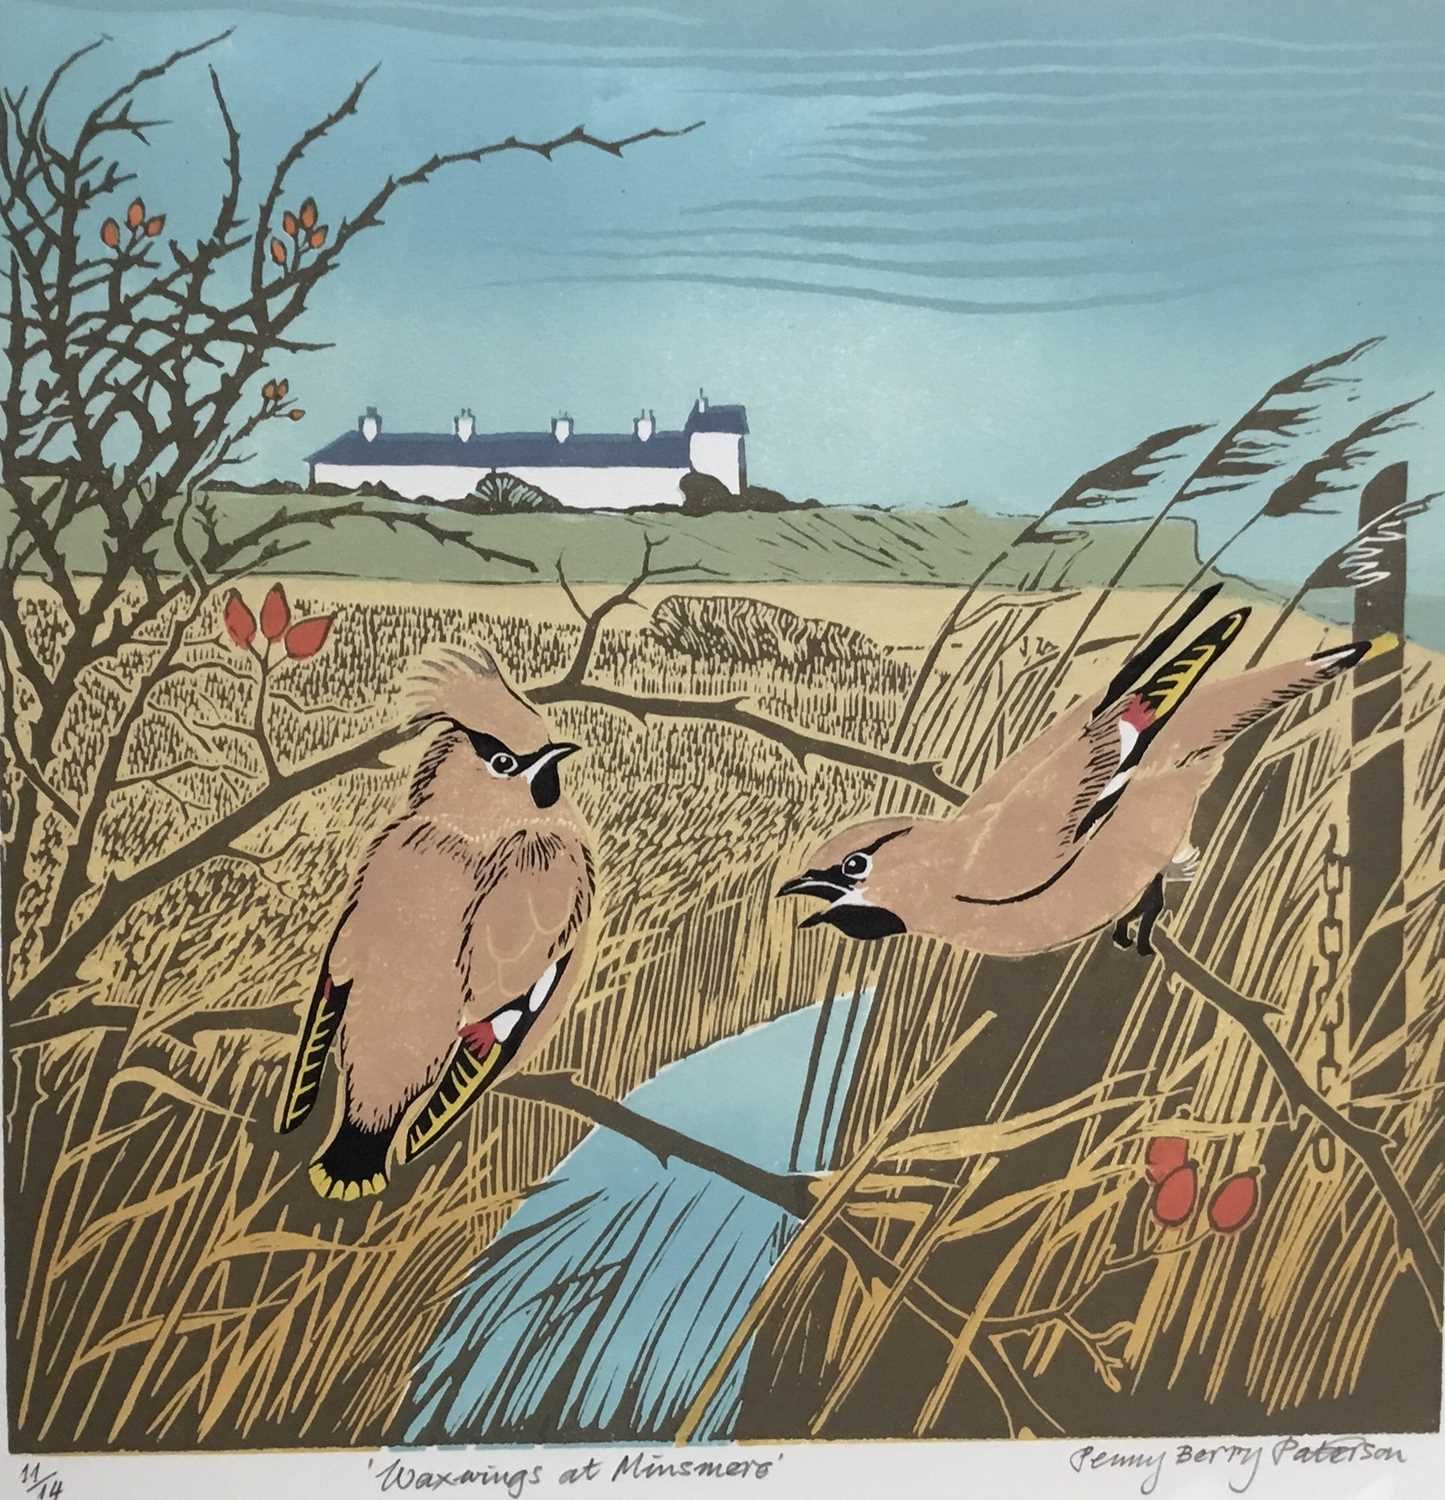 Penny Berry Paterson (1941-2021) colour linocut print, Waxwings at Minsmere, signed and numbered 11/